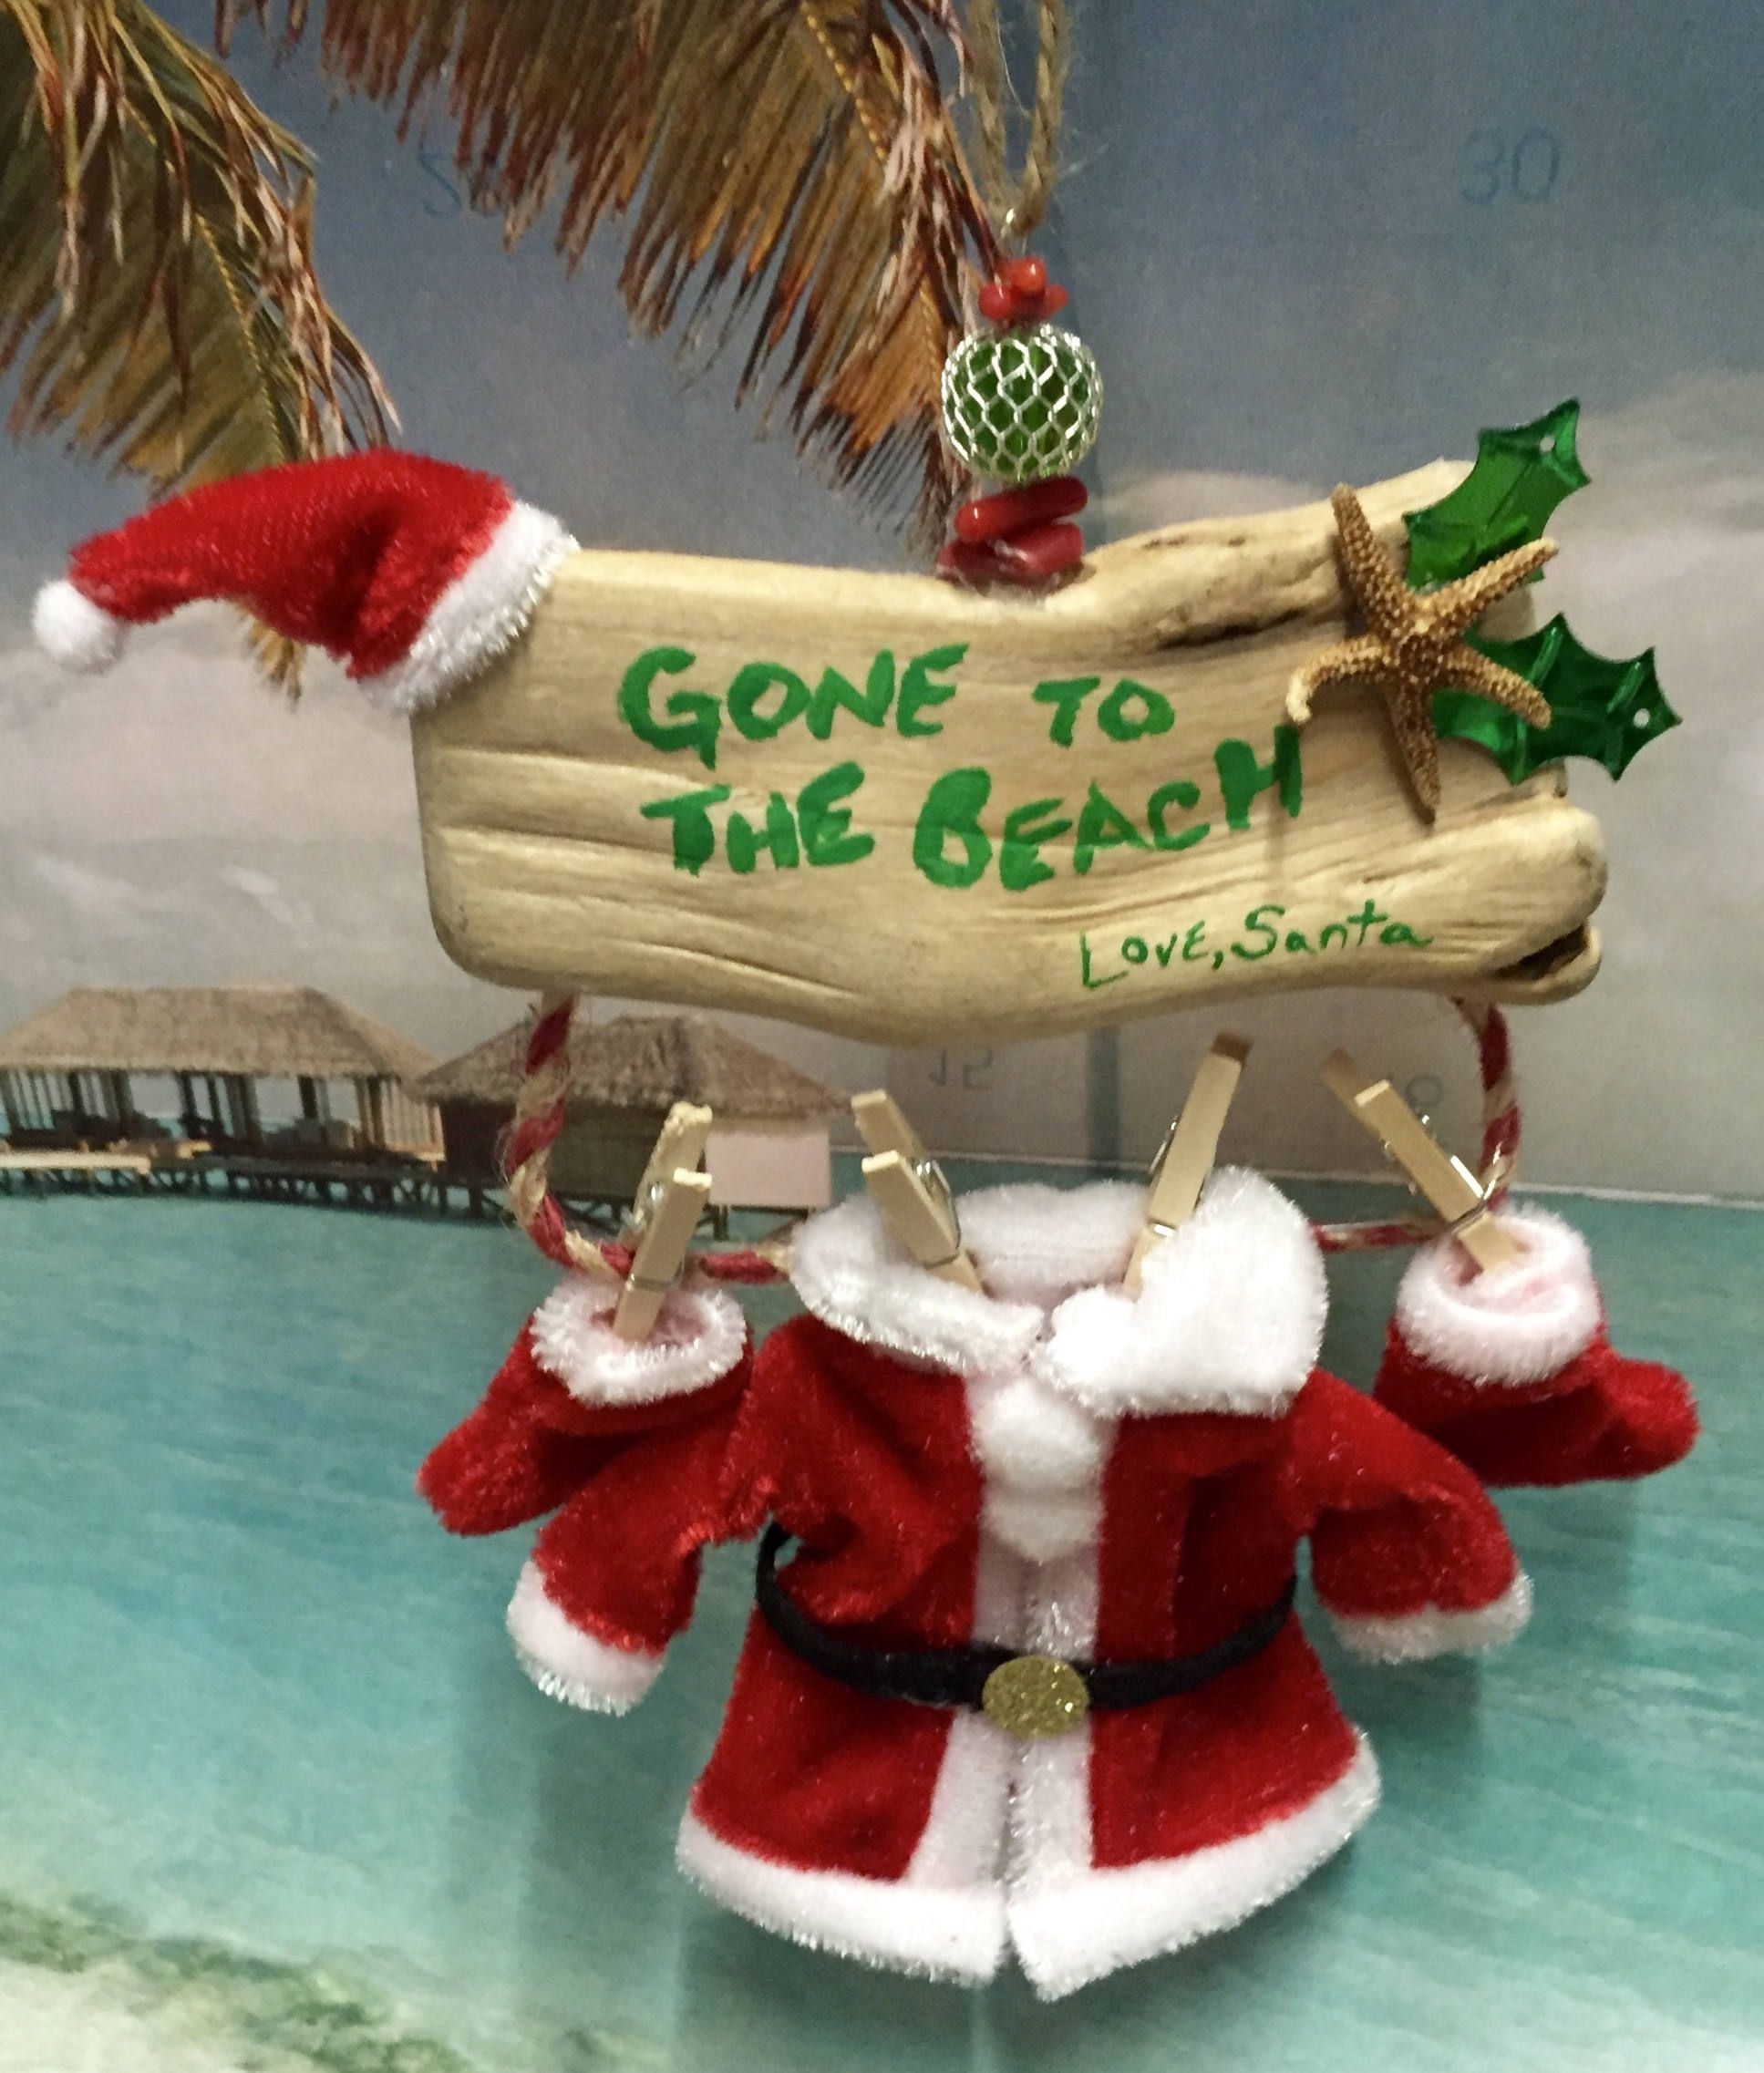 Christmas Ornament Limited Edition Handmade Santa Gone To The